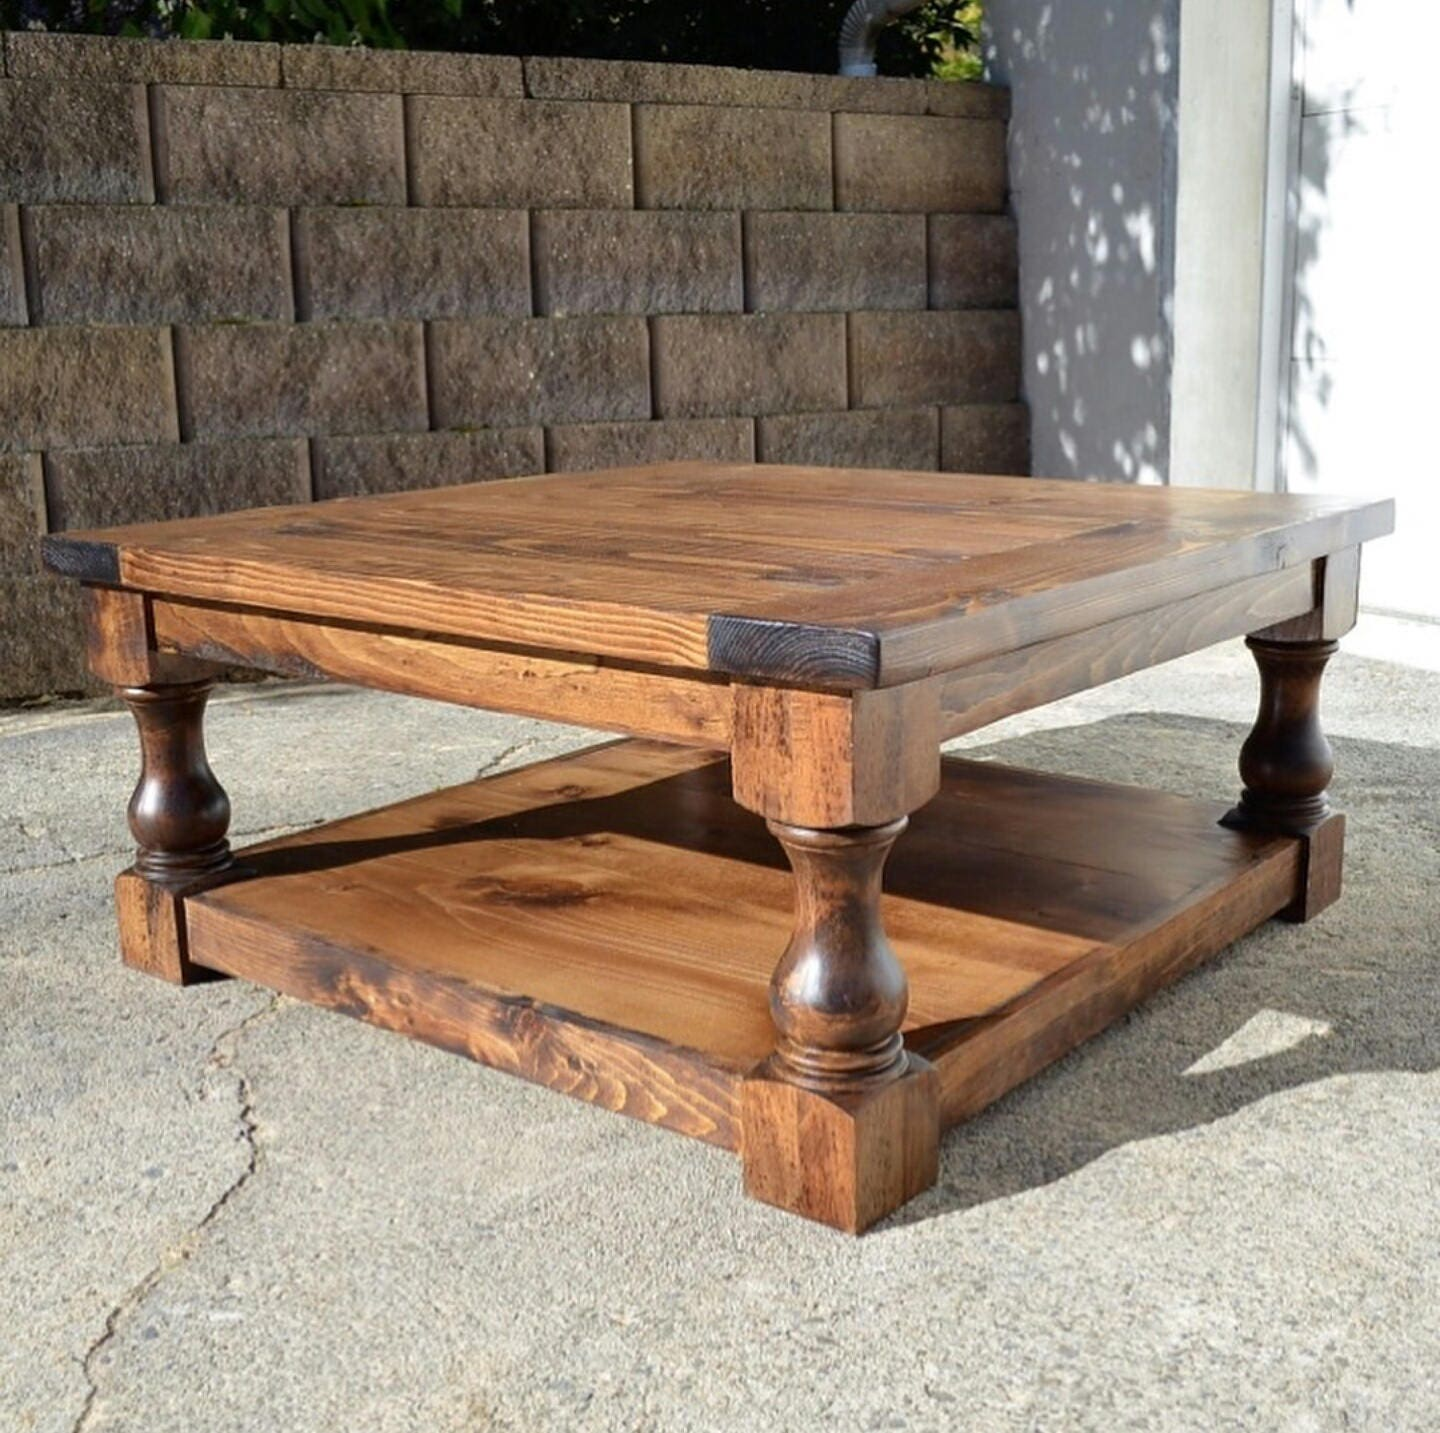 18 Traditional Bench Legs or Coffee Table Legs Unfinished Wood